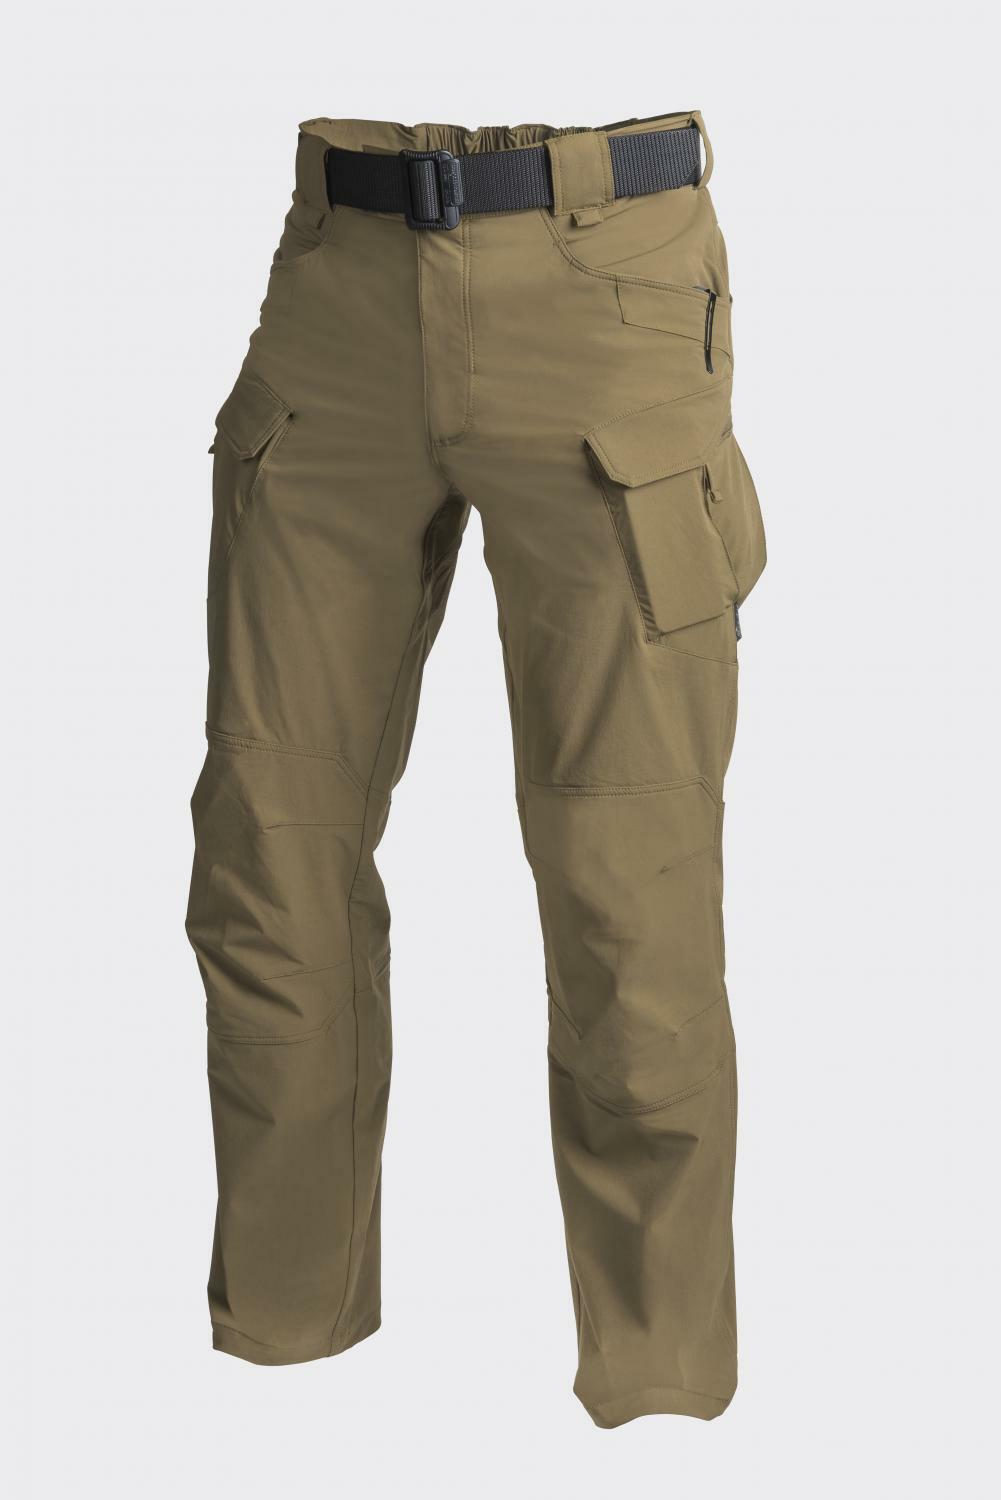 Helikon Tex Otp Tactical Outdoor Trekking Pantalon Mud marrón XXL Xxlarge Long